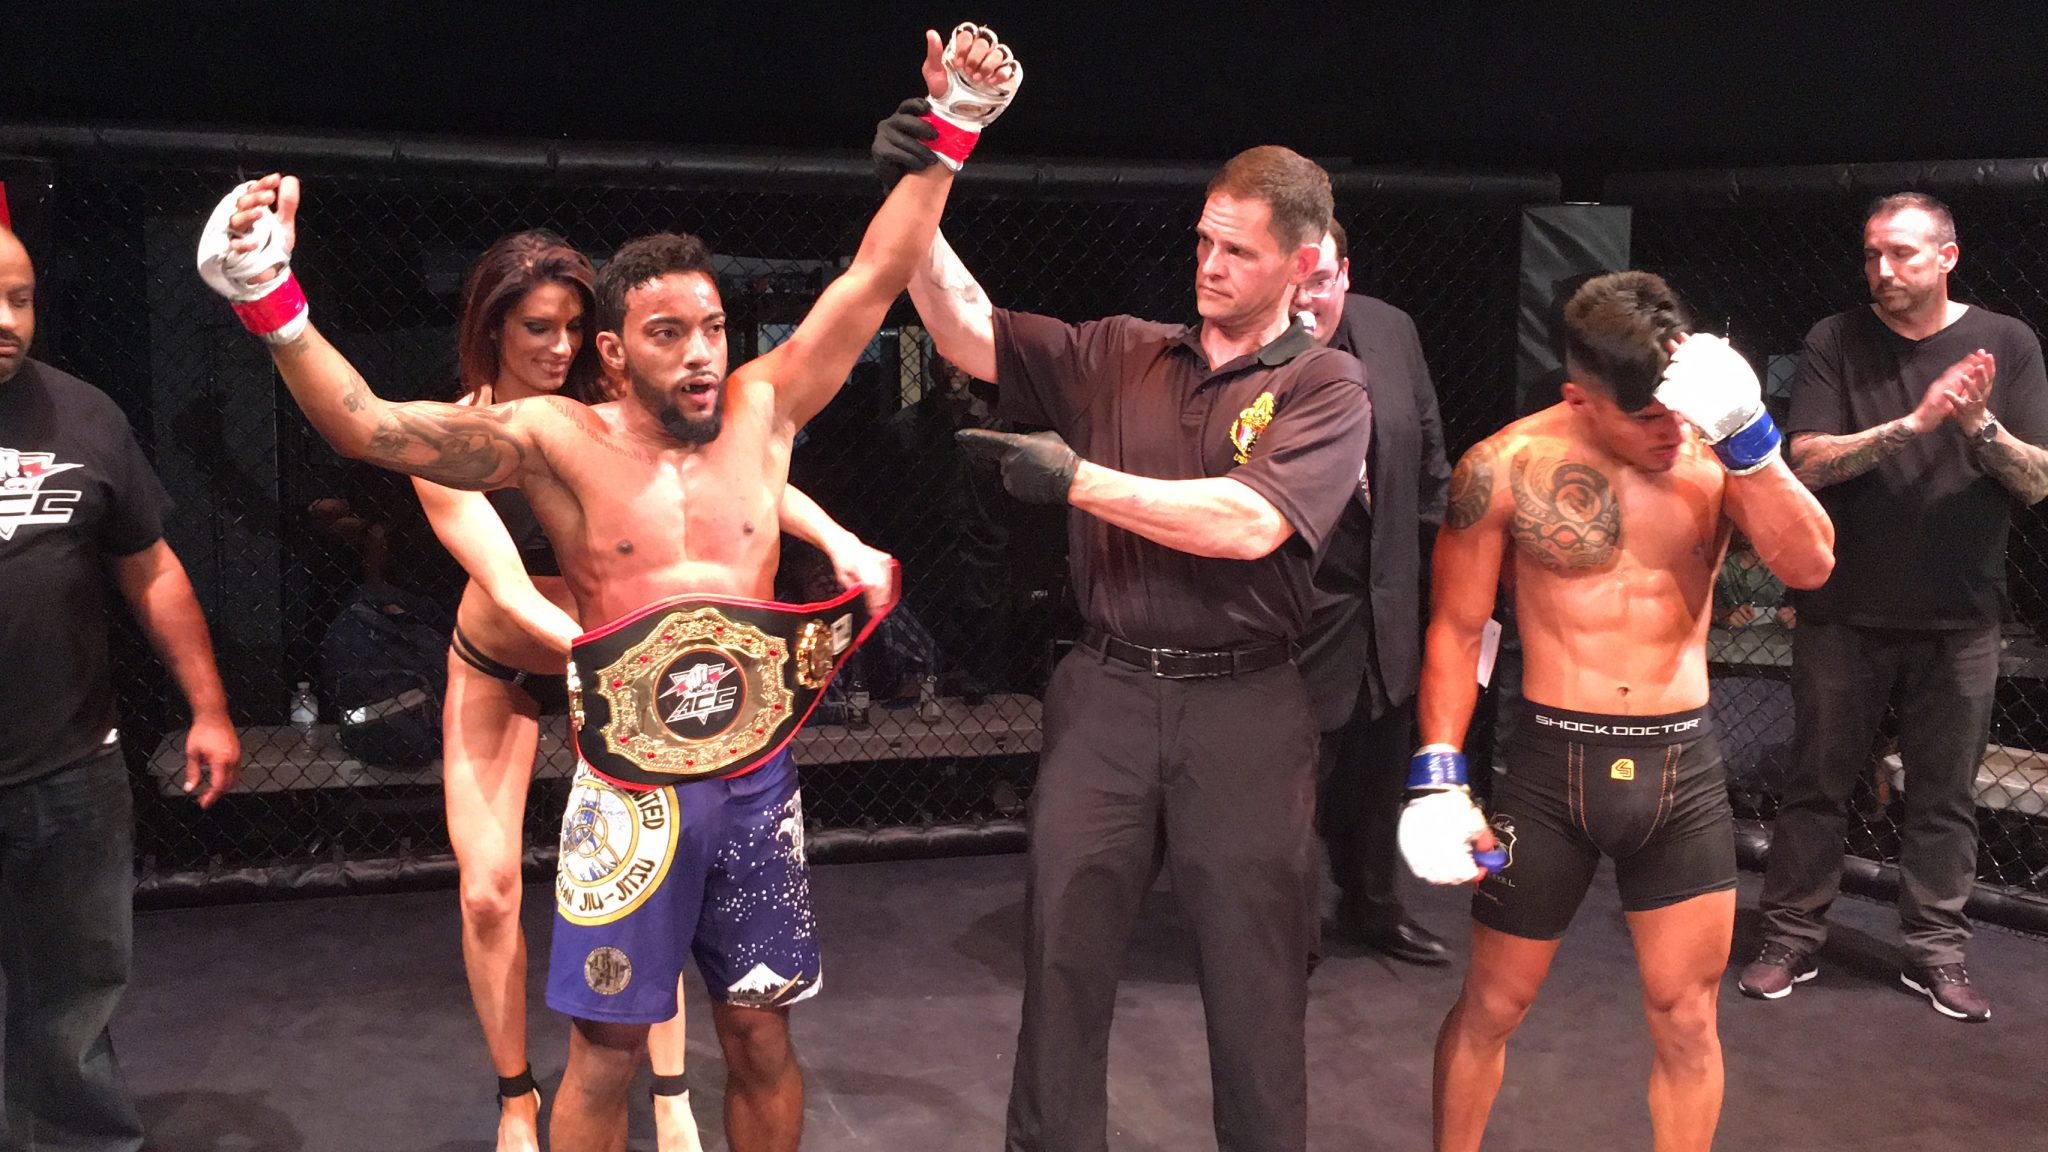 Aggressive Combat Championship 15 Main Event Video - Full Fight - Gonzalez vs. Leon